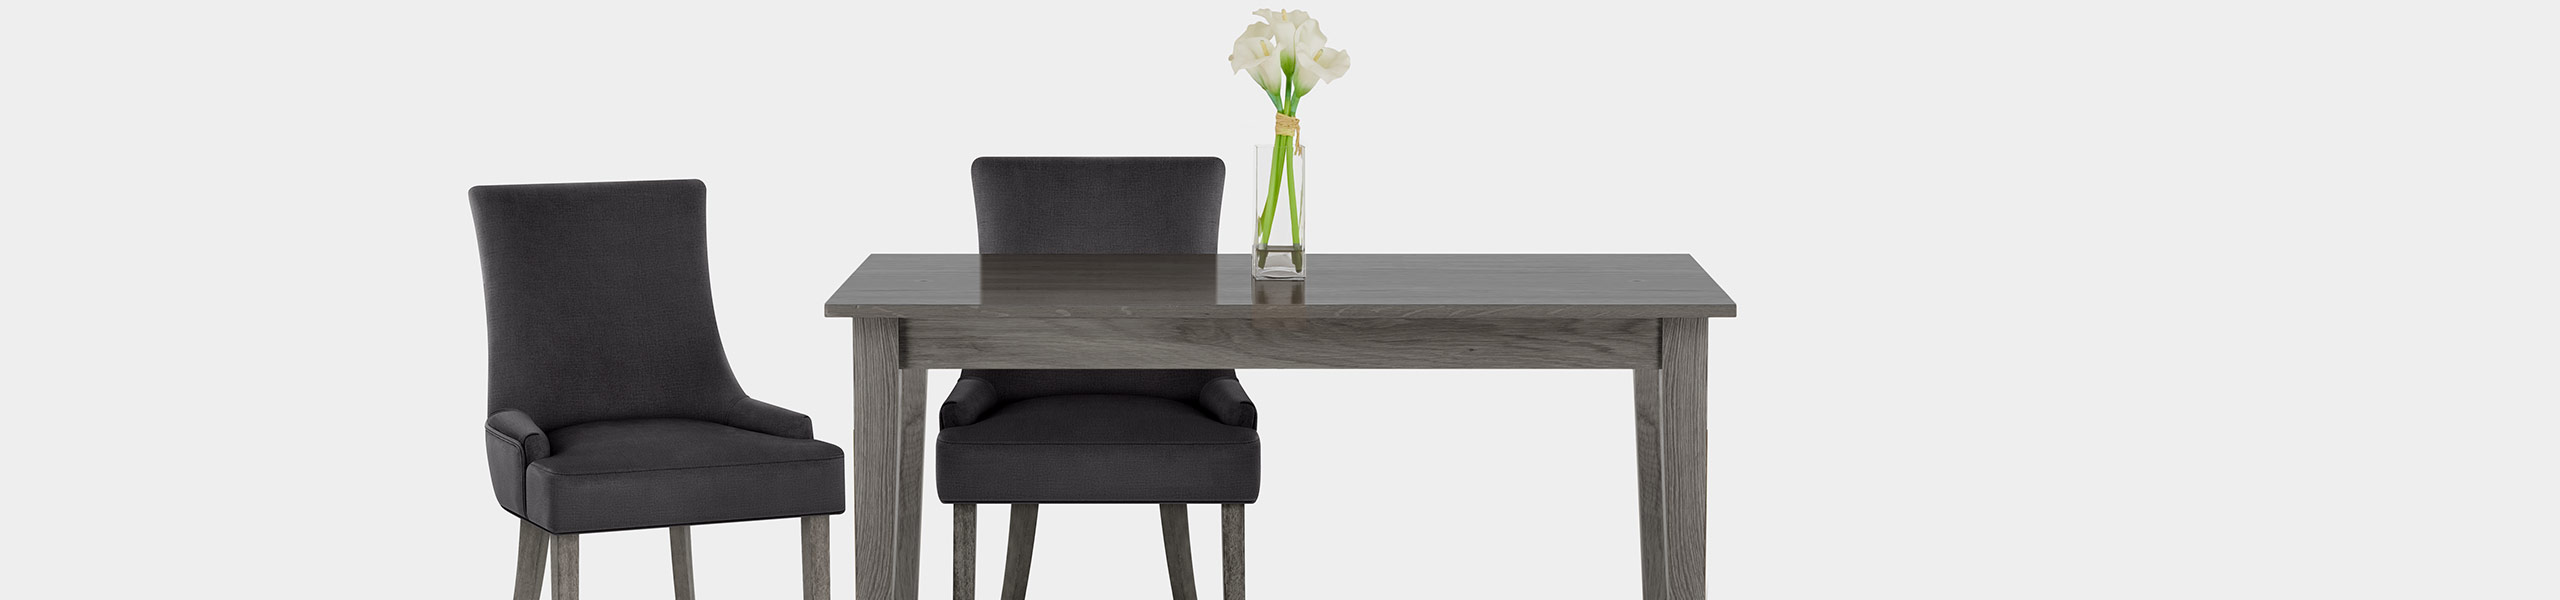 Richmond Grey Oak Chair Charcoal Fabric Video Banner